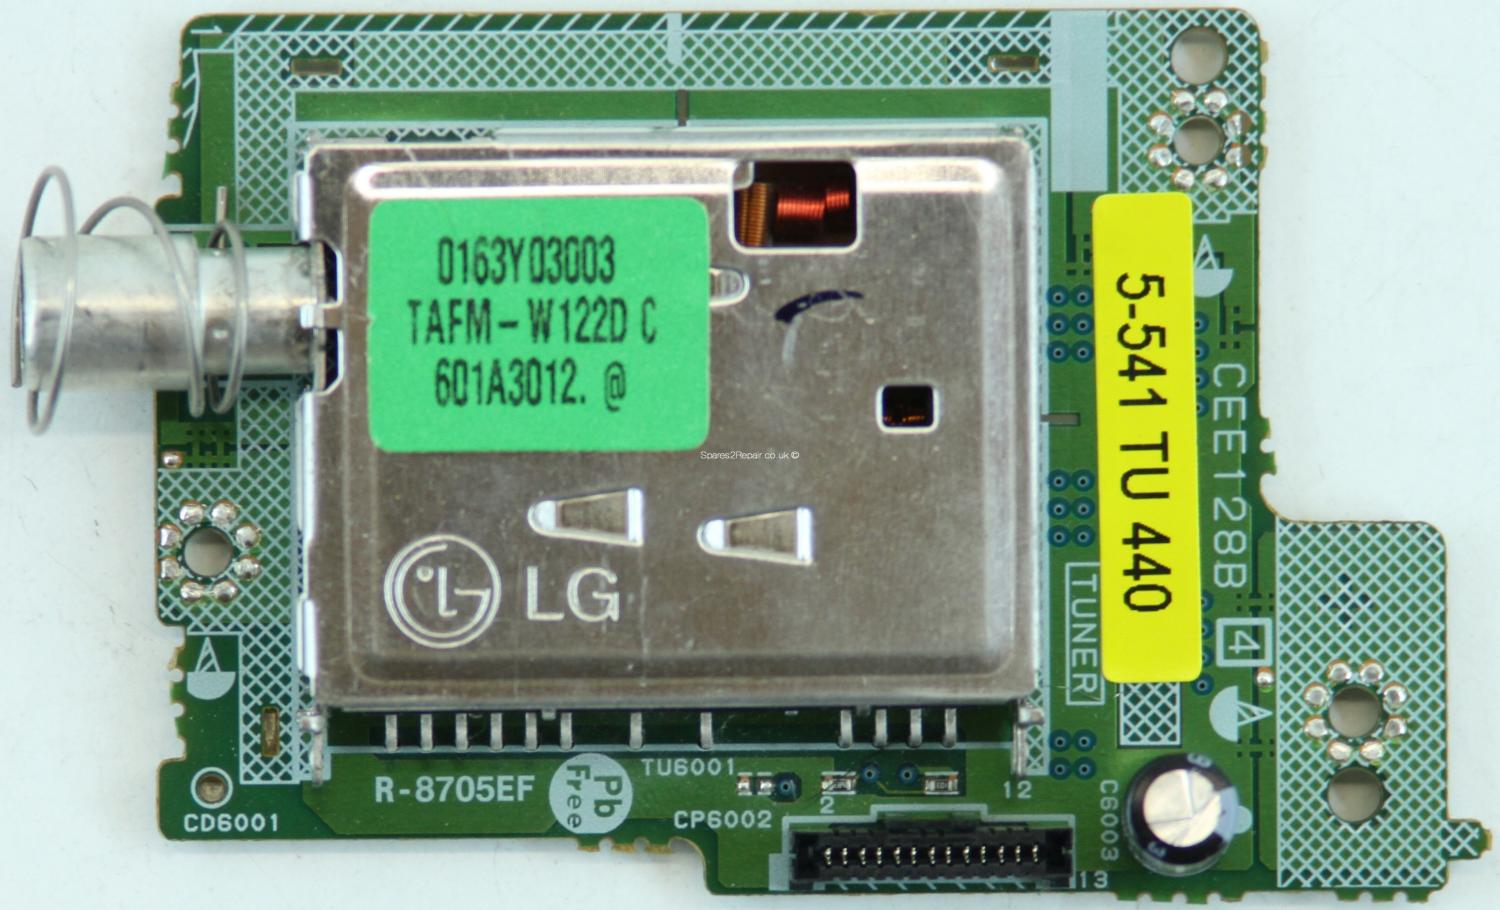 Orion TV-42200SI - Tuner - CEE128B 4 - 5-541 TU 440